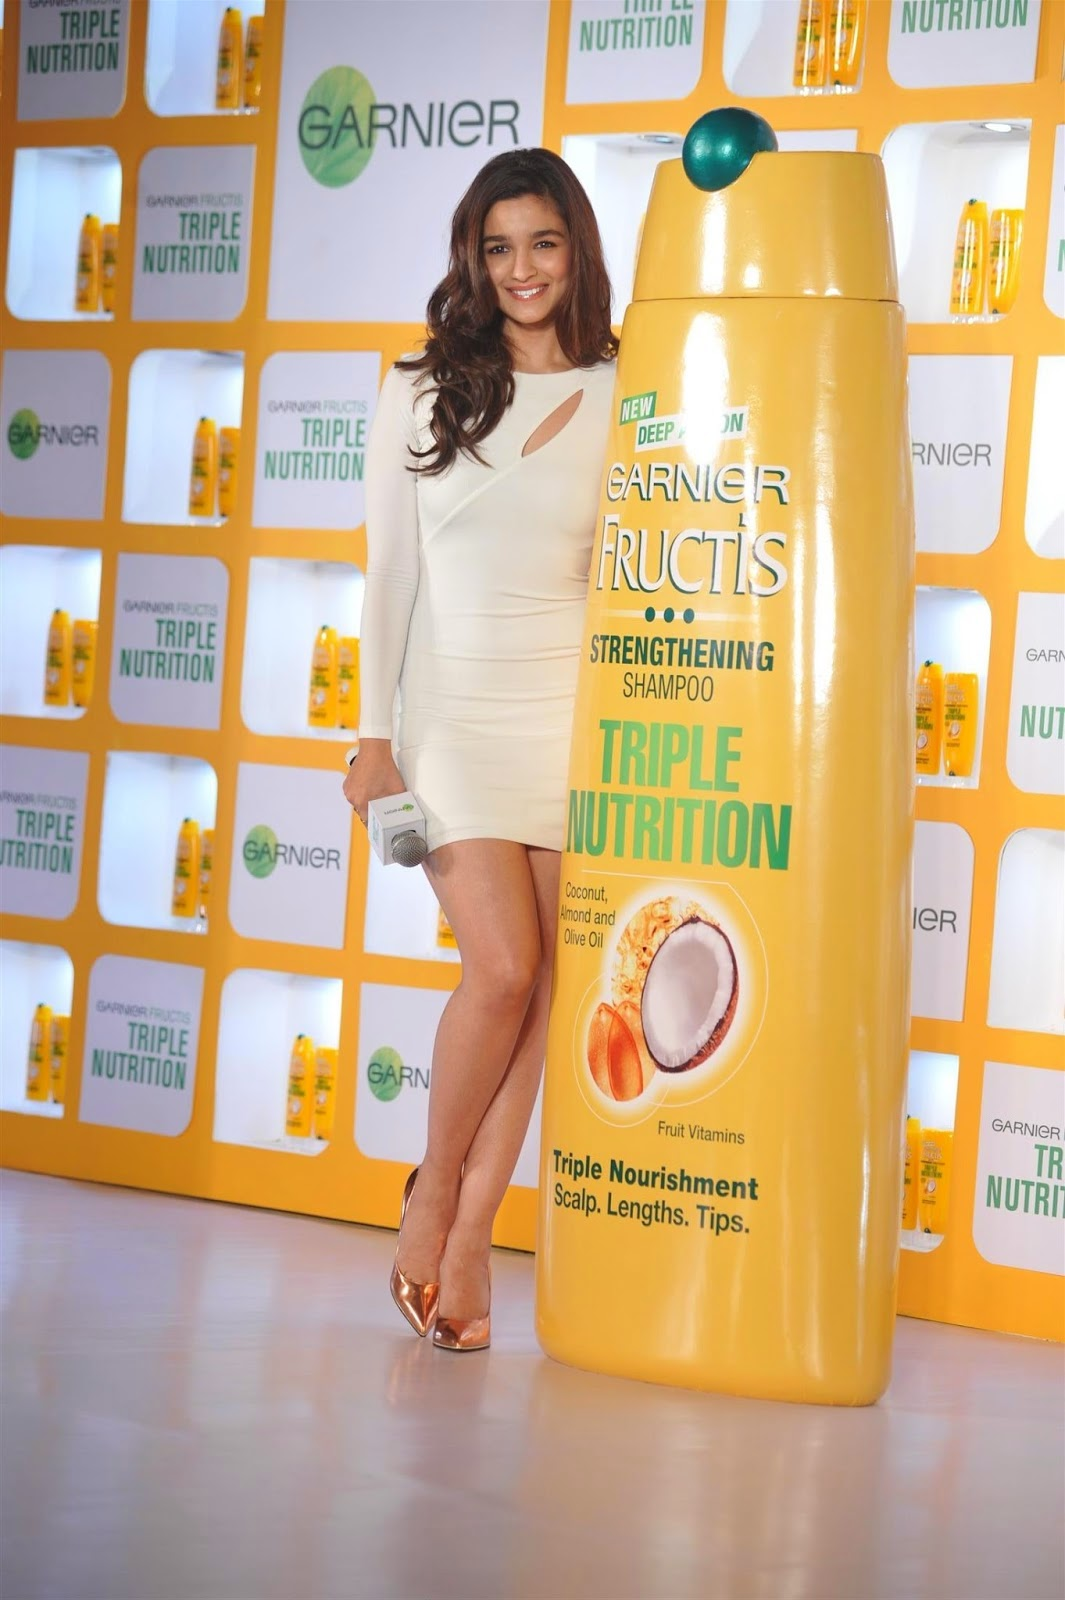 Alia Bhatt Hot Unseen Pics : Alia Bhatt's Wardrobe Malfuntion Hot Pics At Garnier Product Launch Event